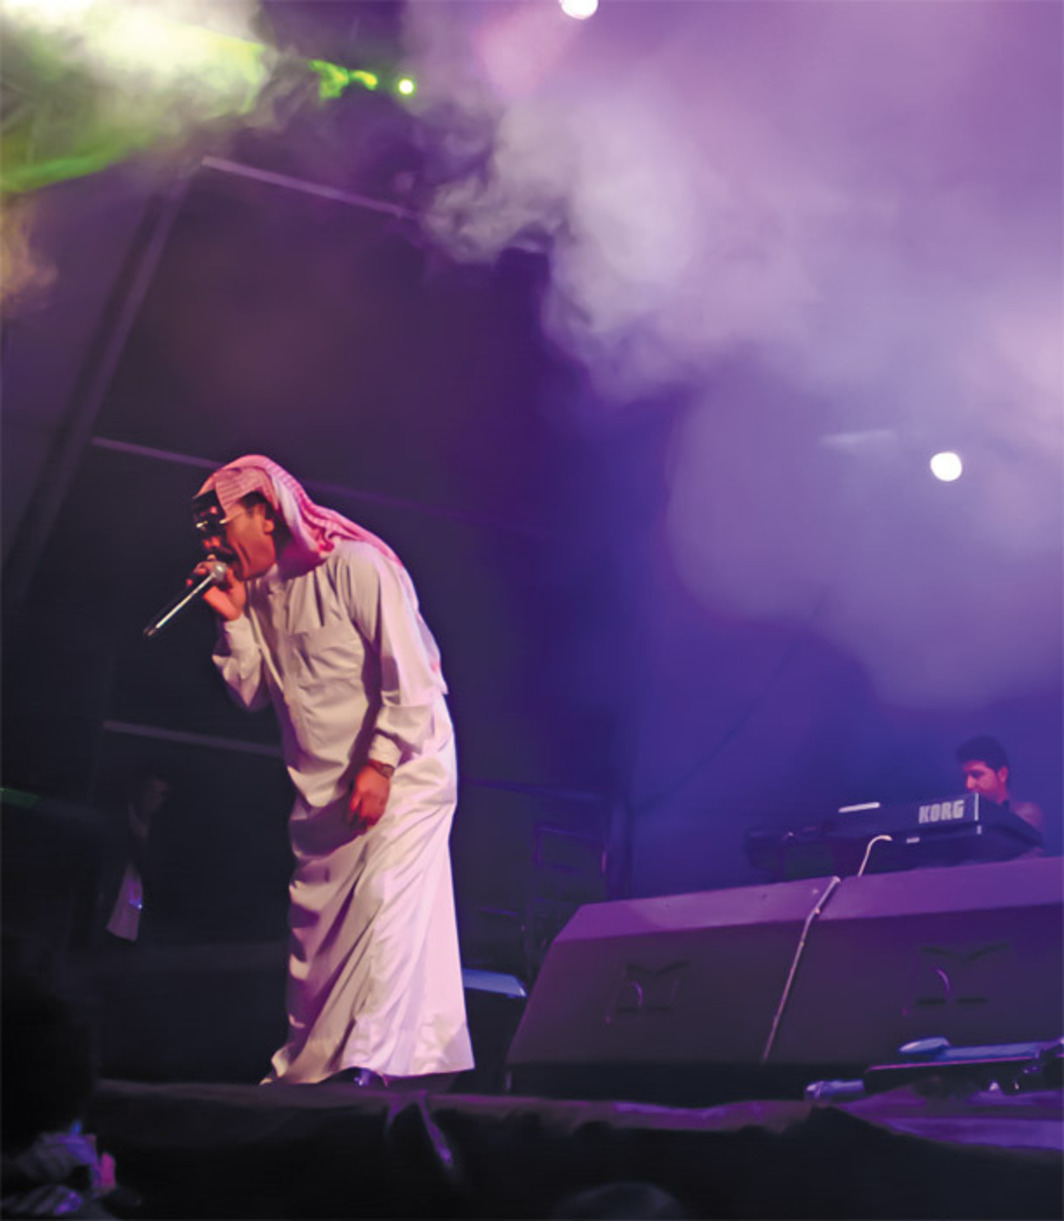 Omar Souleyman Group performing at the Paredes de Coura Festival, Praia do Tabuão, Portugal, August 17, 2011. Photo: Filipa Oliveira/Palco Principle.